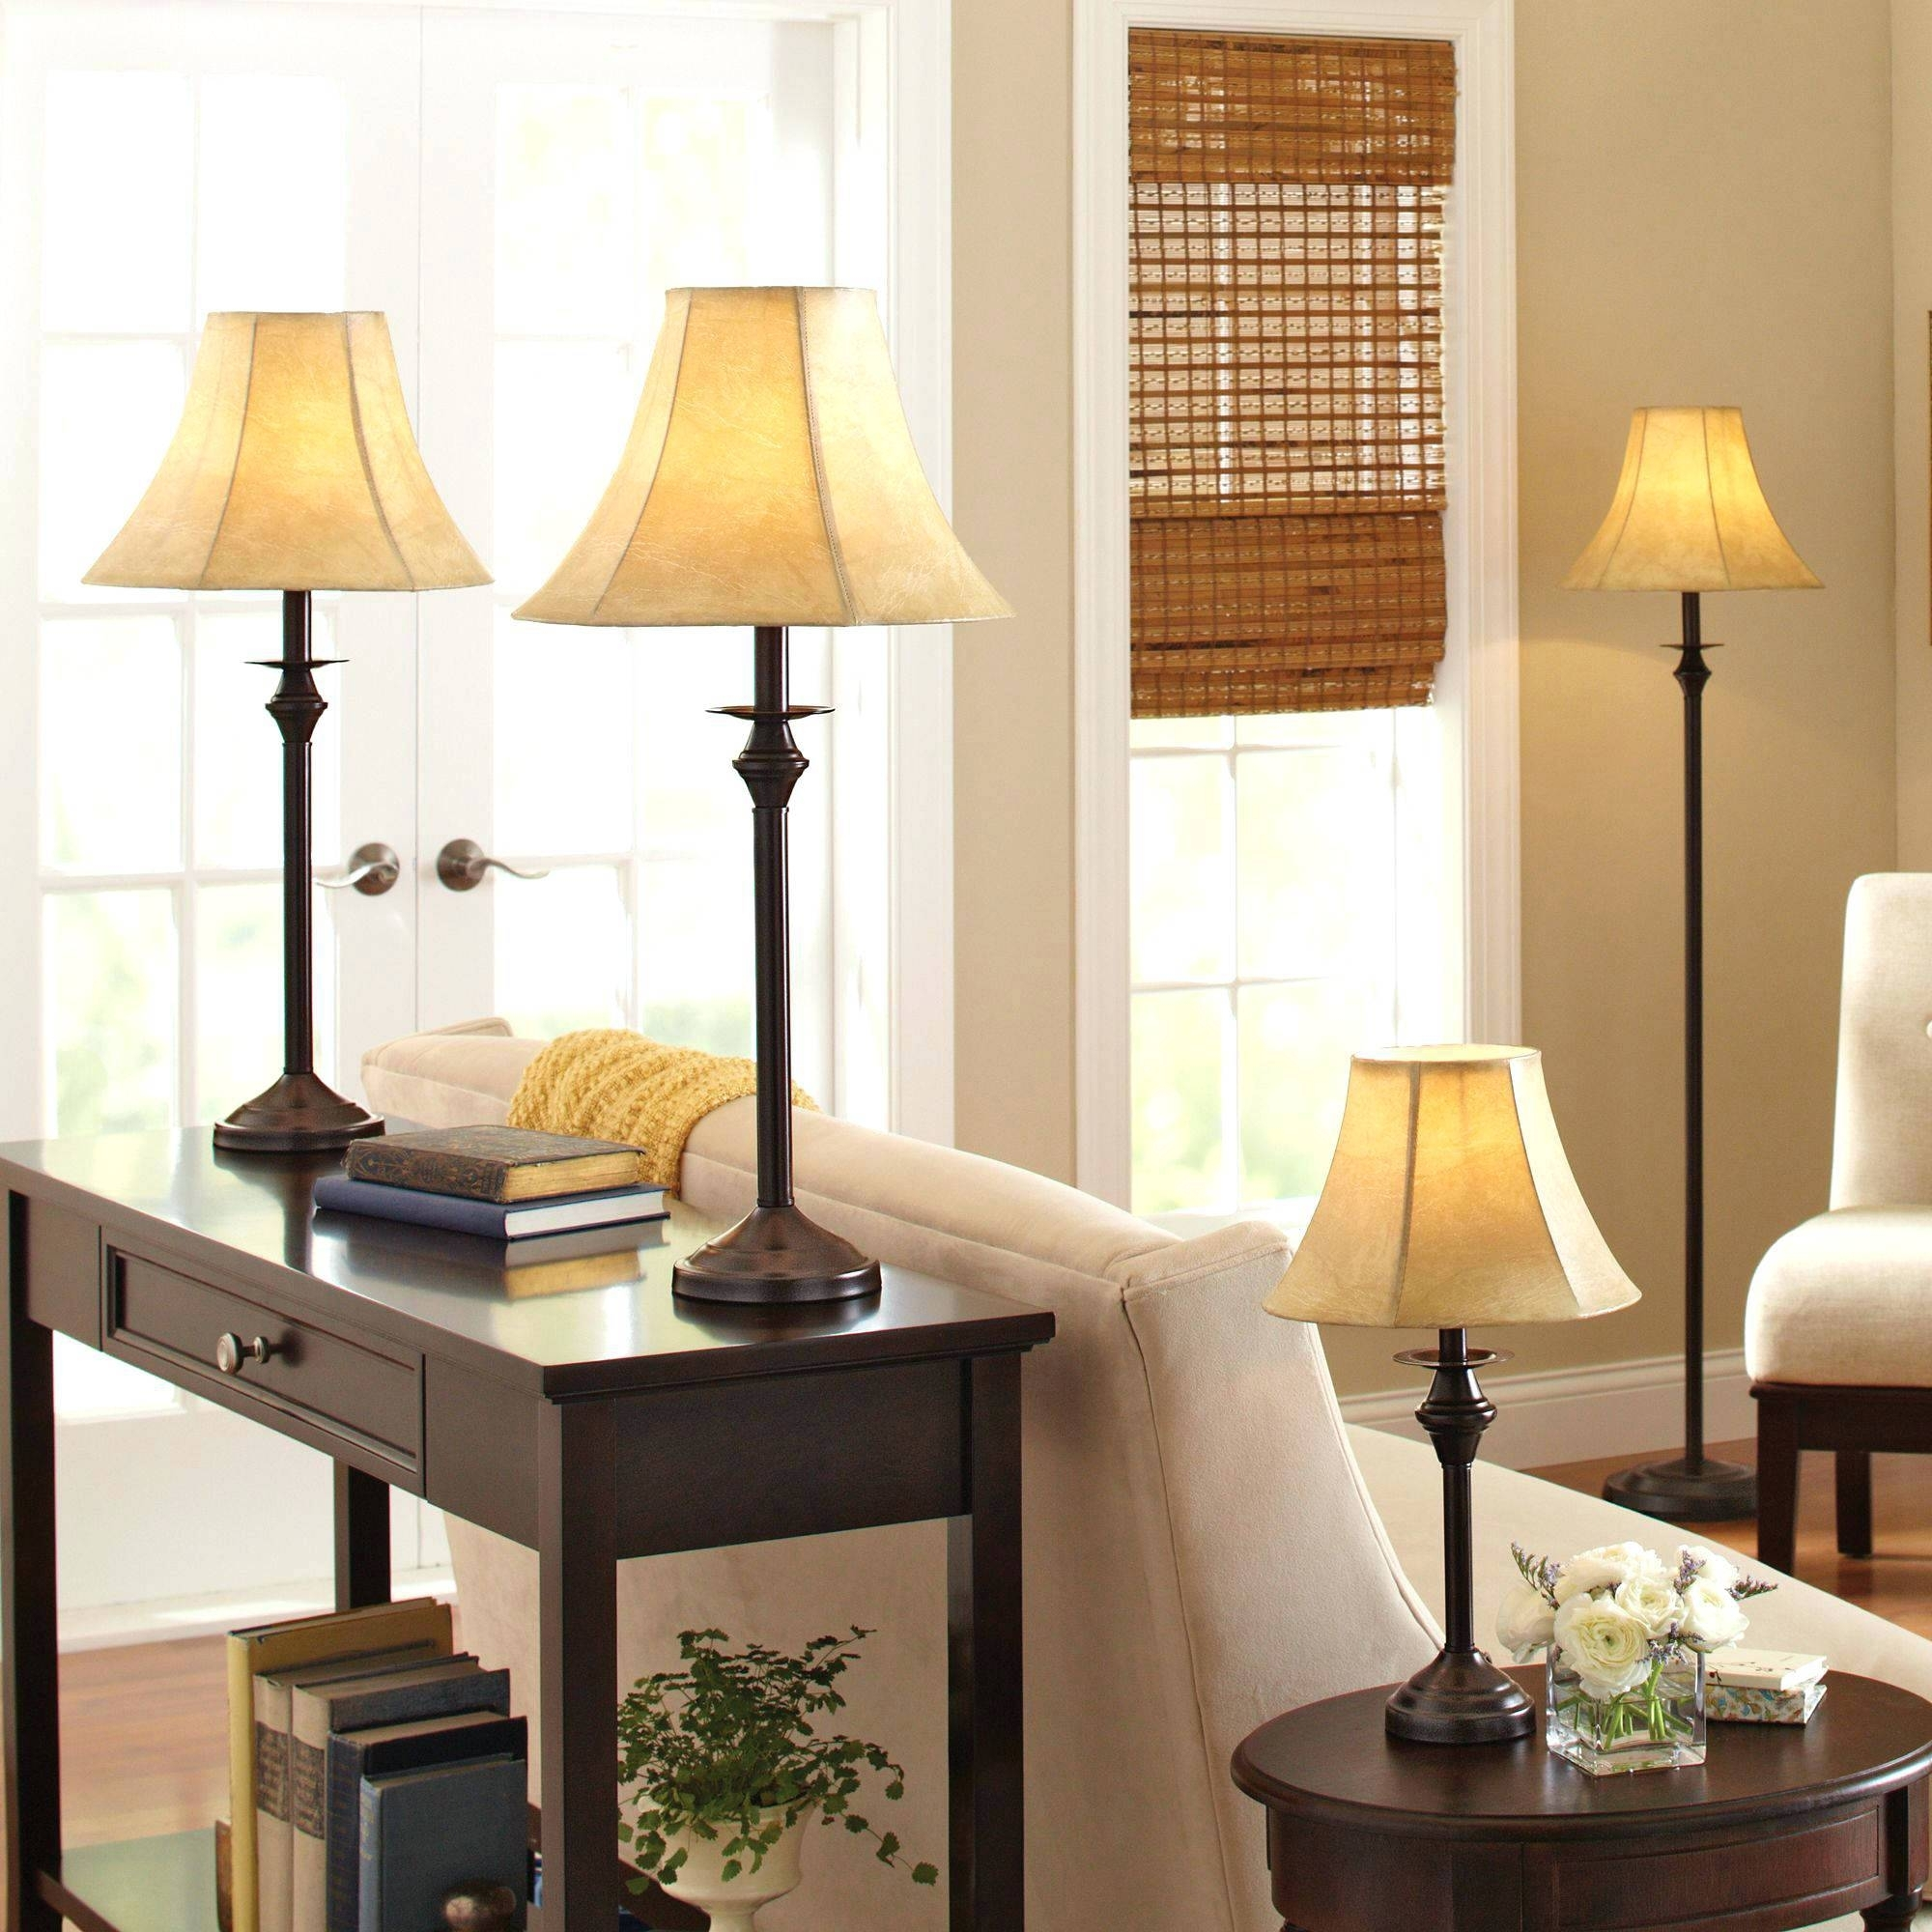 Article With Tag: Farmhouse Table Lamps Living Room | Tingsmombooks In Luxury Living Room Table Lamps (#4 of 15)